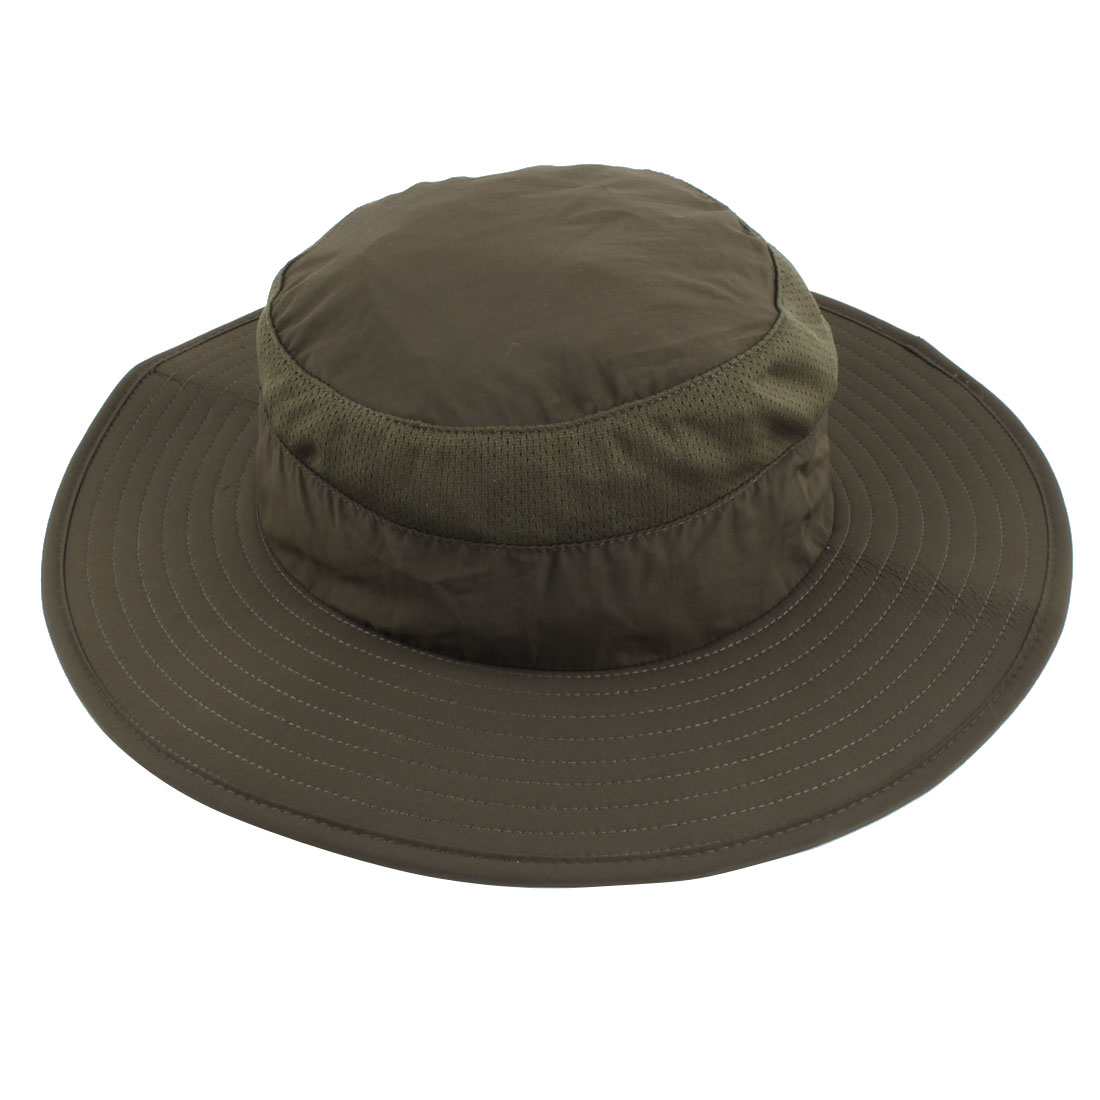 Fisherman Nylon Outdoor Sports Climbing Wide Brim Removable Neck Protector Cloth Bucket Summer Cap Fishing Hat Army Green